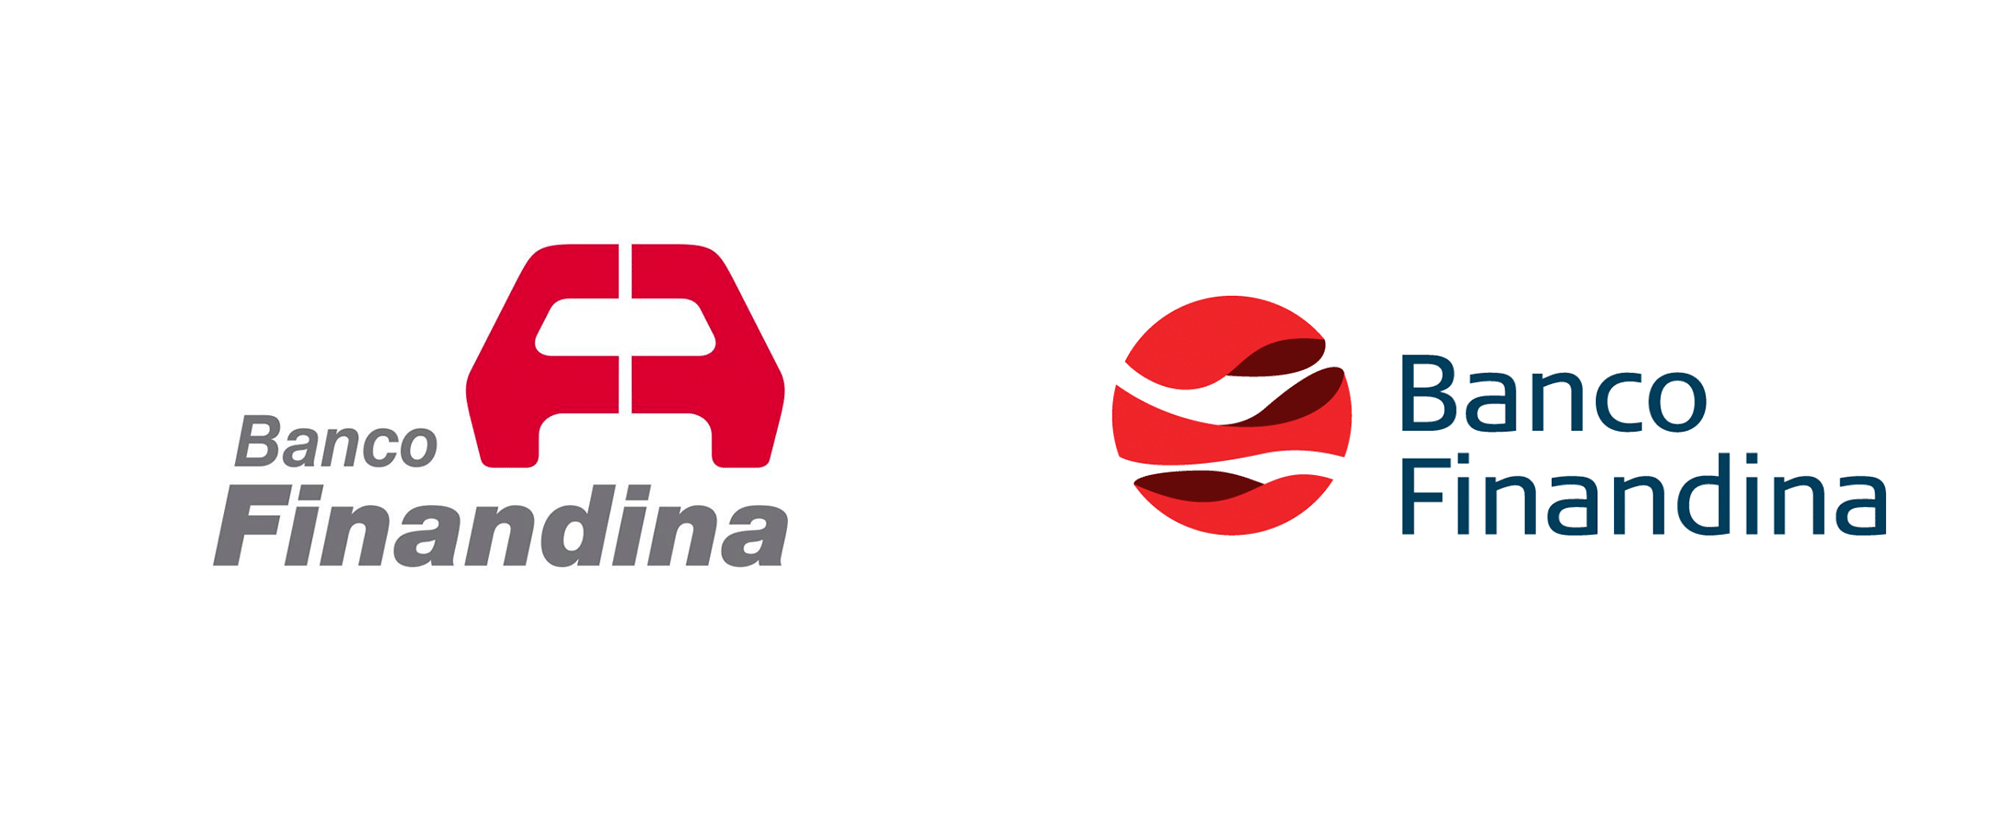 New Logo for Banco Finandina by Brandhaus